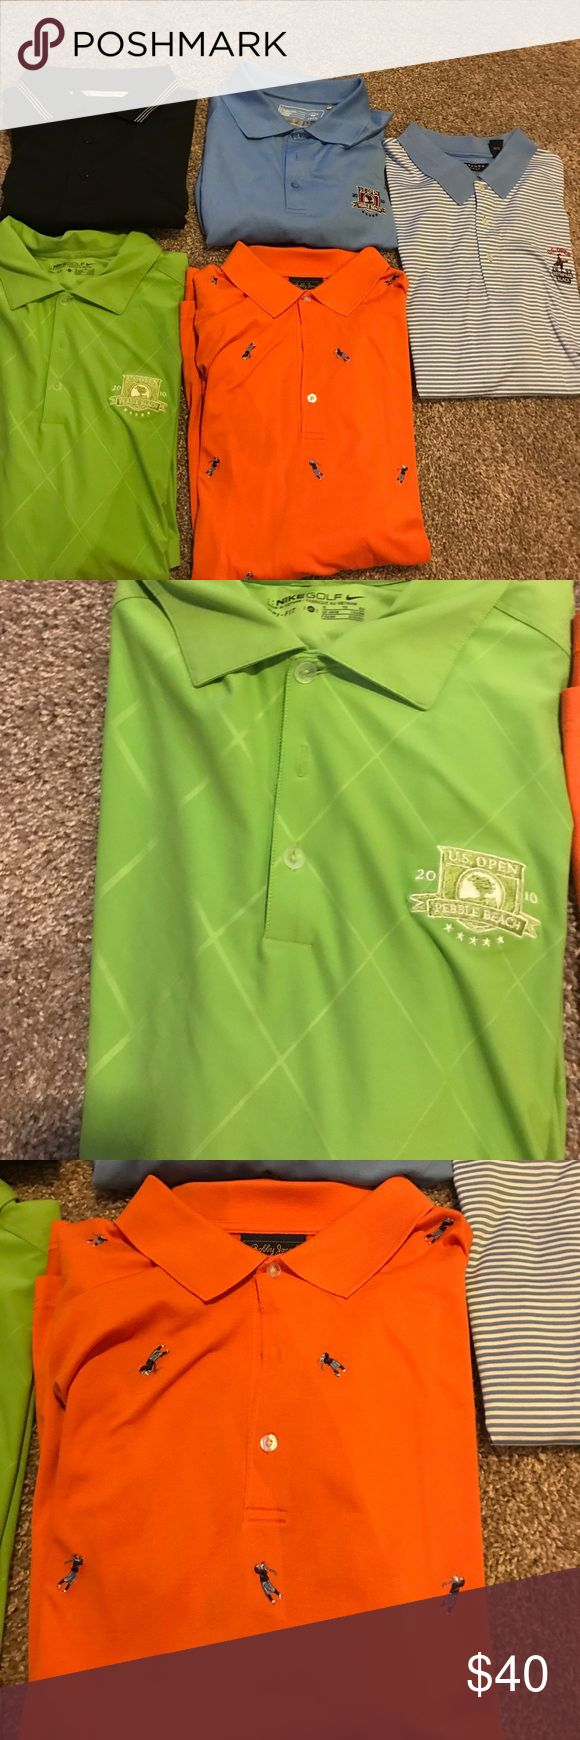 Golf Shirts Worn once and dry cleaned! Bought them at different place some at the us open 2010 pebble beach golf course, bethpage black us open 2009, and others are just golf Shirts. All different name brands Nike, Bobby Jones, oxford golf, and cutter and buck Shirts Polos